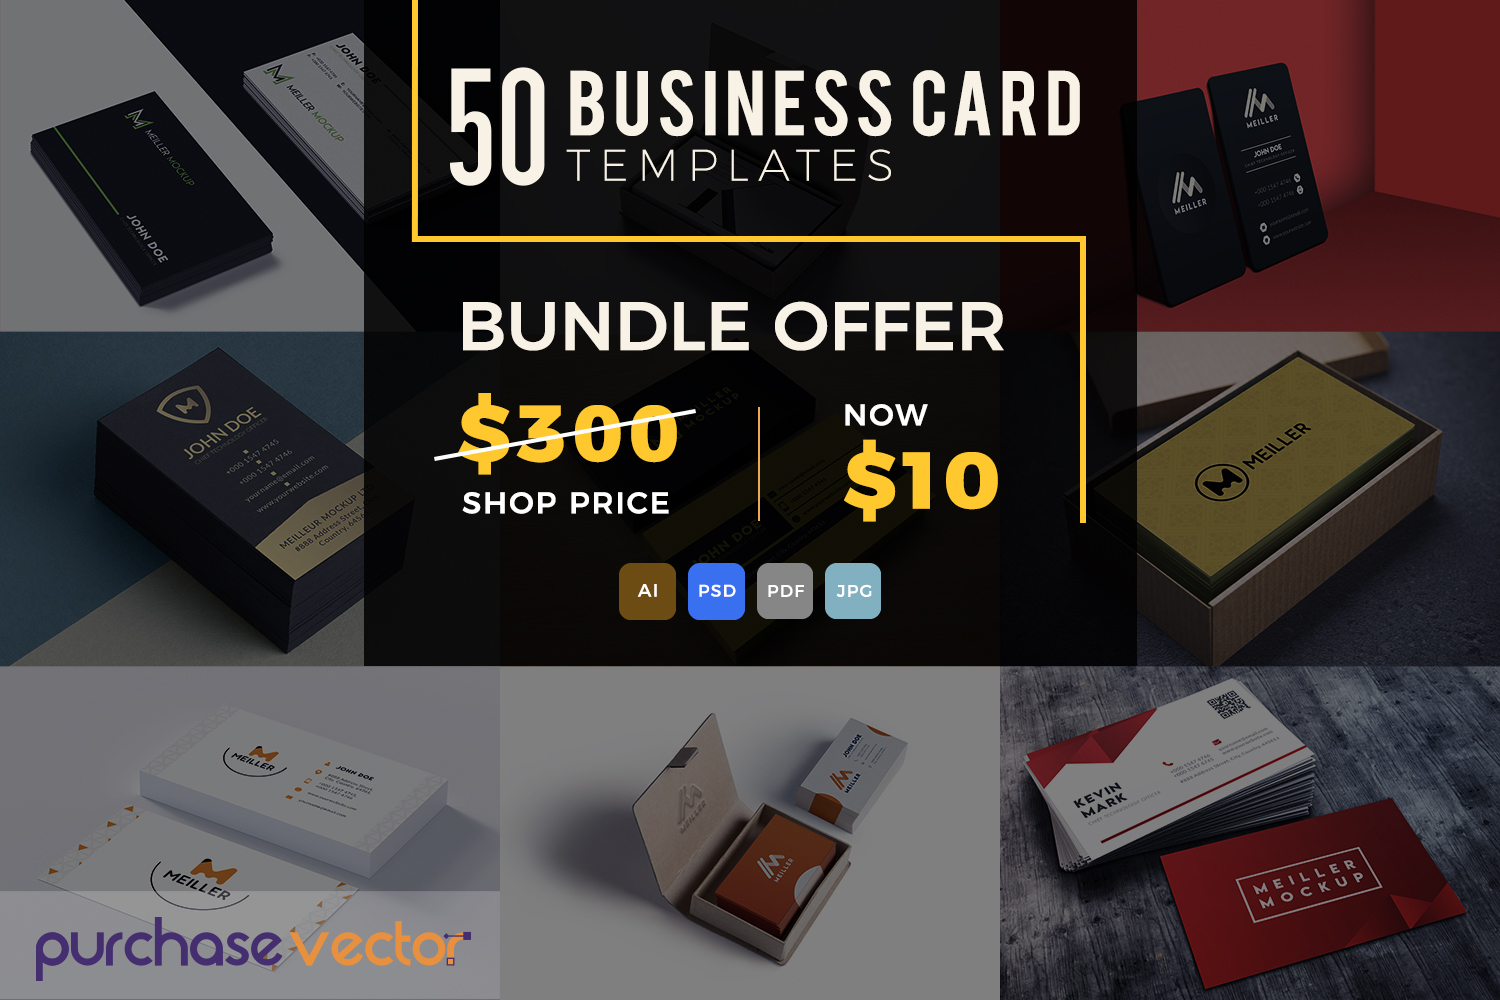 Professional Business Cards Templates example image 7